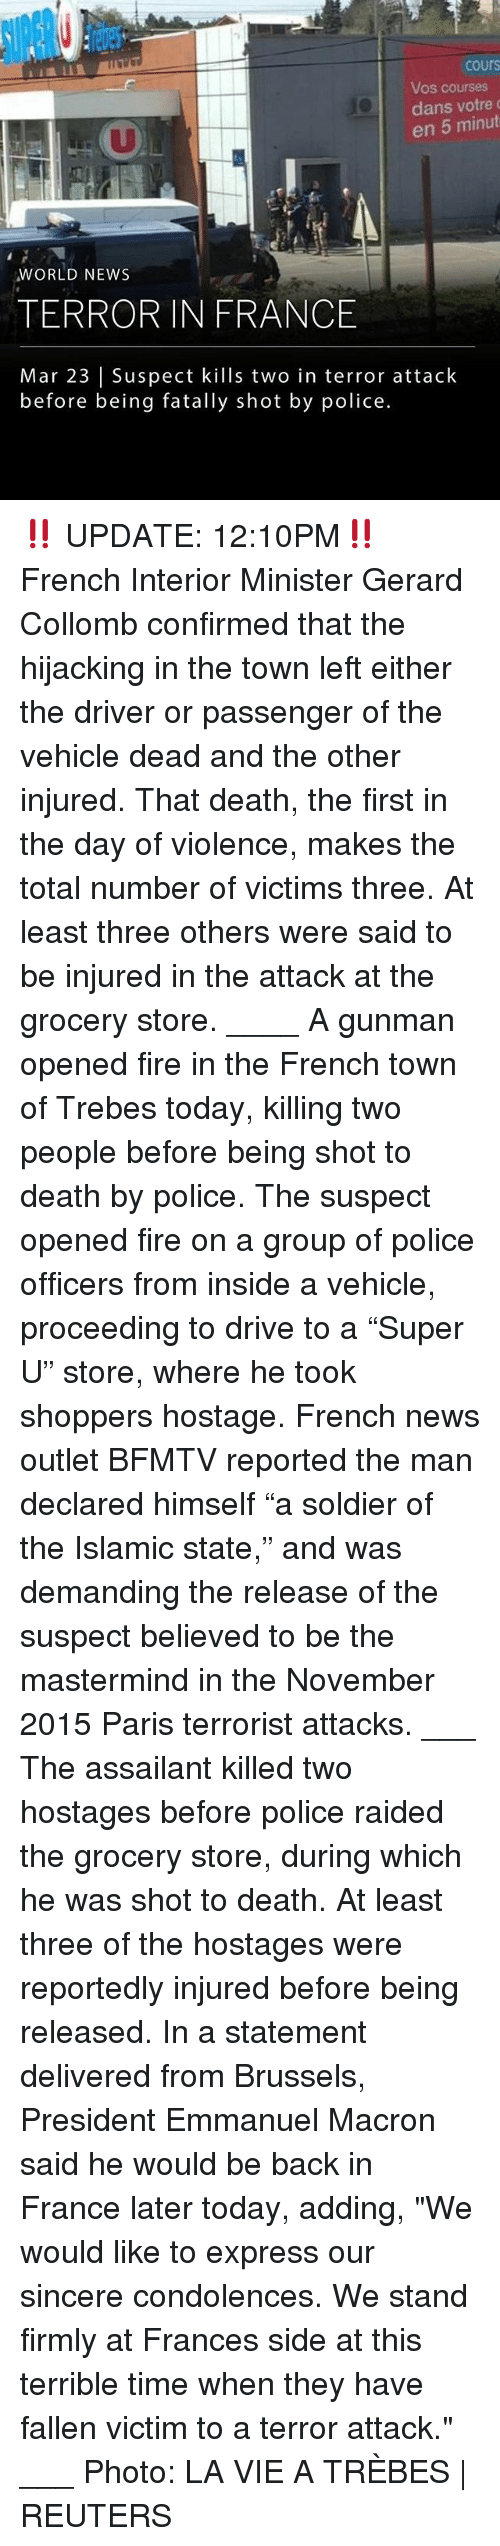 """Fire, Memes, and News: cours  Vos courses  dans votre  en 5 minut  WORLD NEWS  TERROR IN FRANCE  Mar 23   Suspect kills two in terror attack  before being fatally shot by police. ‼️ UPDATE: 12:10PM‼️ French Interior Minister Gerard Collomb confirmed that the hijacking in the town left either the driver or passenger of the vehicle dead and the other injured. That death, the first in the day of violence, makes the total number of victims three. At least three others were said to be injured in the attack at the grocery store. ____ A gunman opened fire in the French town of Trebes today, killing two people before being shot to death by police. The suspect opened fire on a group of police officers from inside a vehicle, proceeding to drive to a """"Super U"""" store, where he took shoppers hostage. French news outlet BFMTV reported the man declared himself """"a soldier of the Islamic state,"""" and was demanding the release of the suspect believed to be the mastermind in the November 2015 Paris terrorist attacks. ___ The assailant killed two hostages before police raided the grocery store, during which he was shot to death. At least three of the hostages were reportedly injured before being released. In a statement delivered from Brussels, President Emmanuel Macron said he would be back in France later today, adding, """"We would like to express our sincere condolences. We stand firmly at Frances side at this terrible time when they have fallen victim to a terror attack."""" ___ Photo: LA VIE A TRÈBES   REUTERS"""